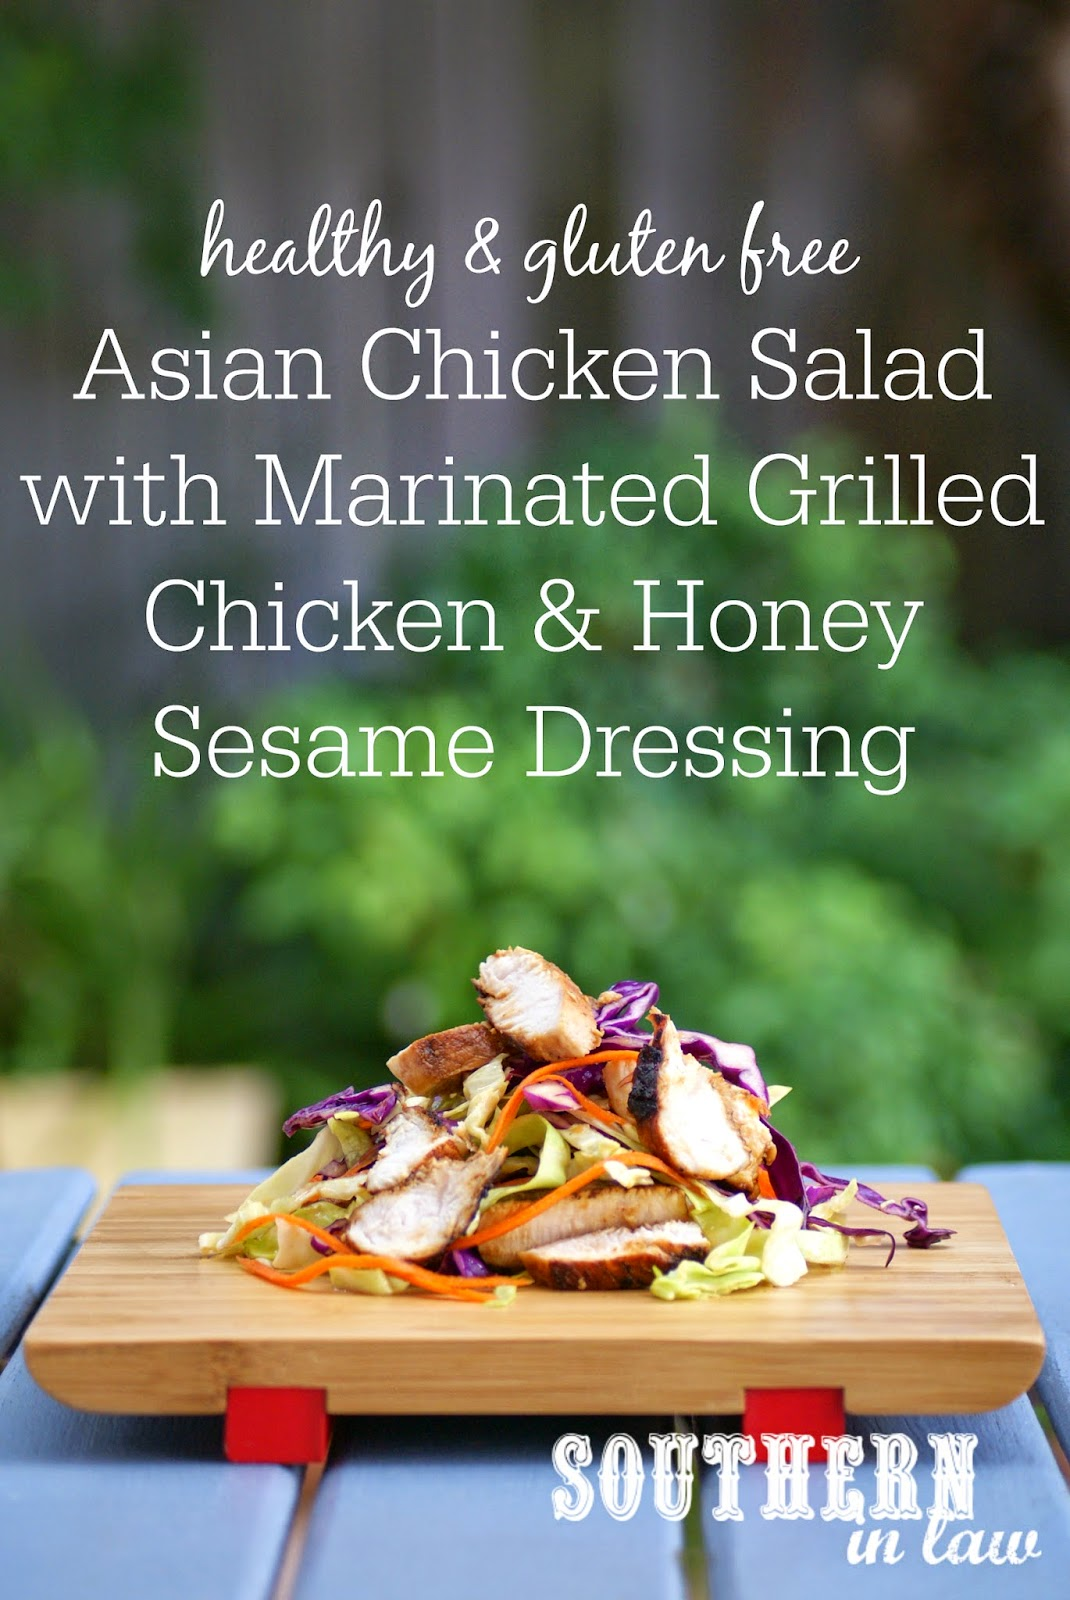 Low Fat Asian Chicken Salad with Marinated Chicken Breast and Honey Sesame Dressing Recipe - low fat, gluten free, clean eating friendly, grain free, paleo